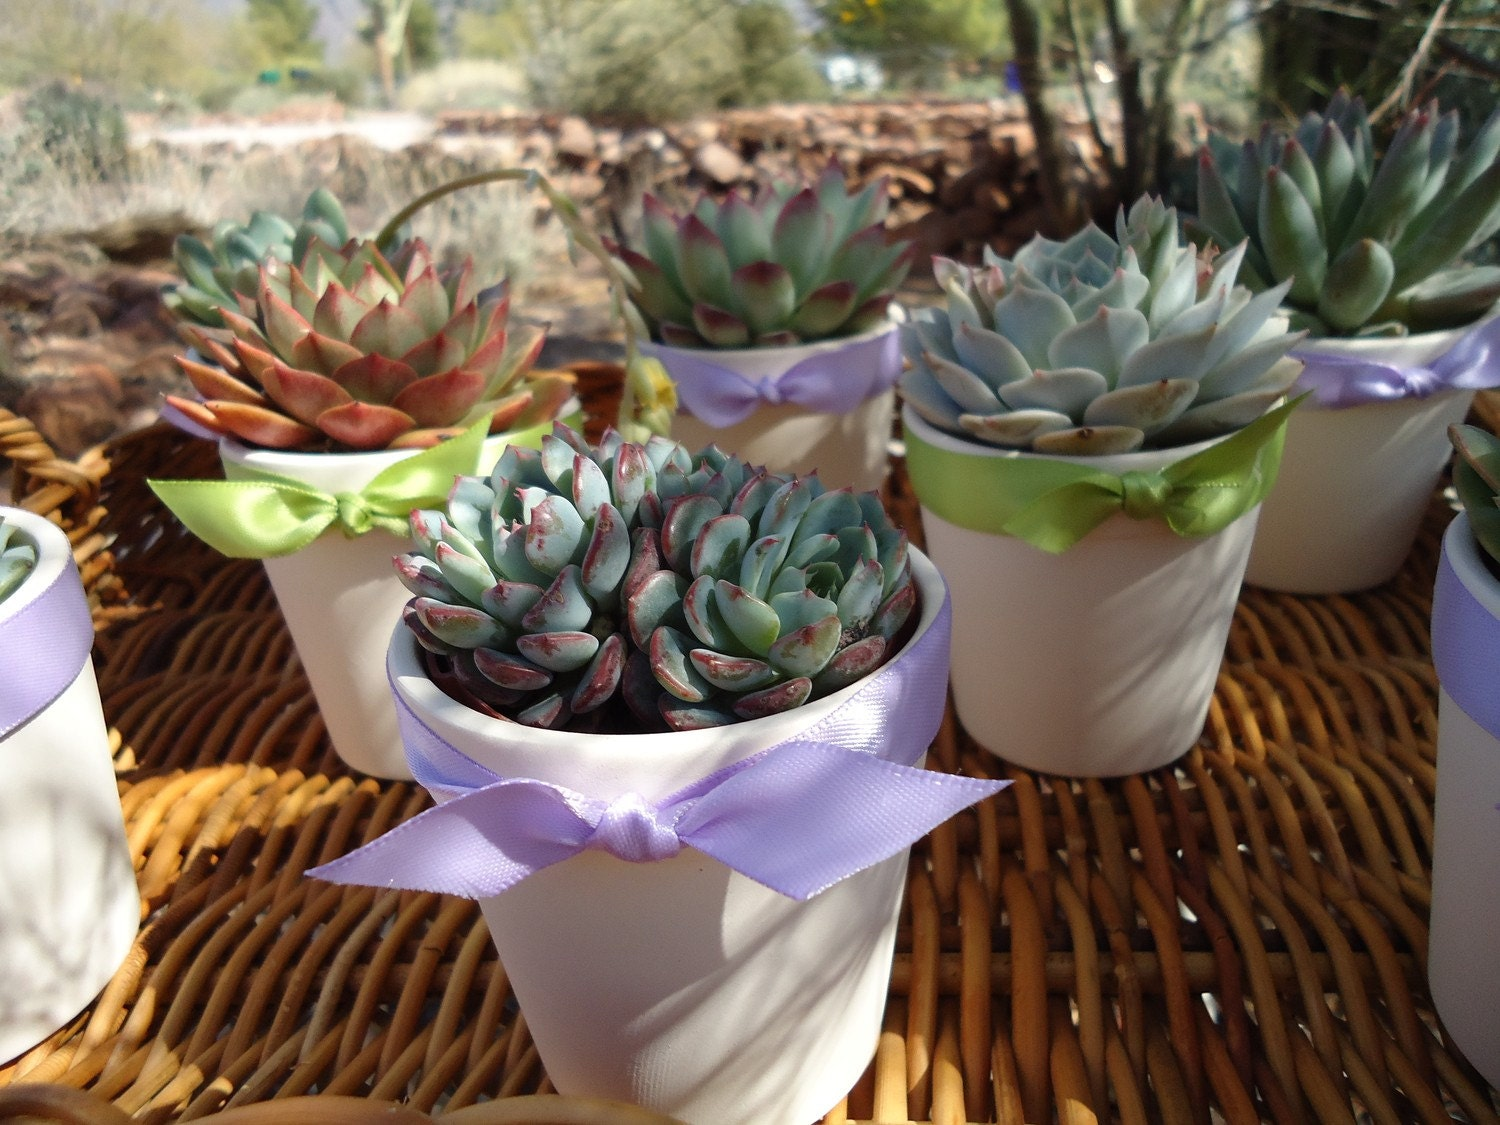 24 Succulent Rosette Favors in White Ceramic Pots for Baby or Bridal Shower, Party Gifts